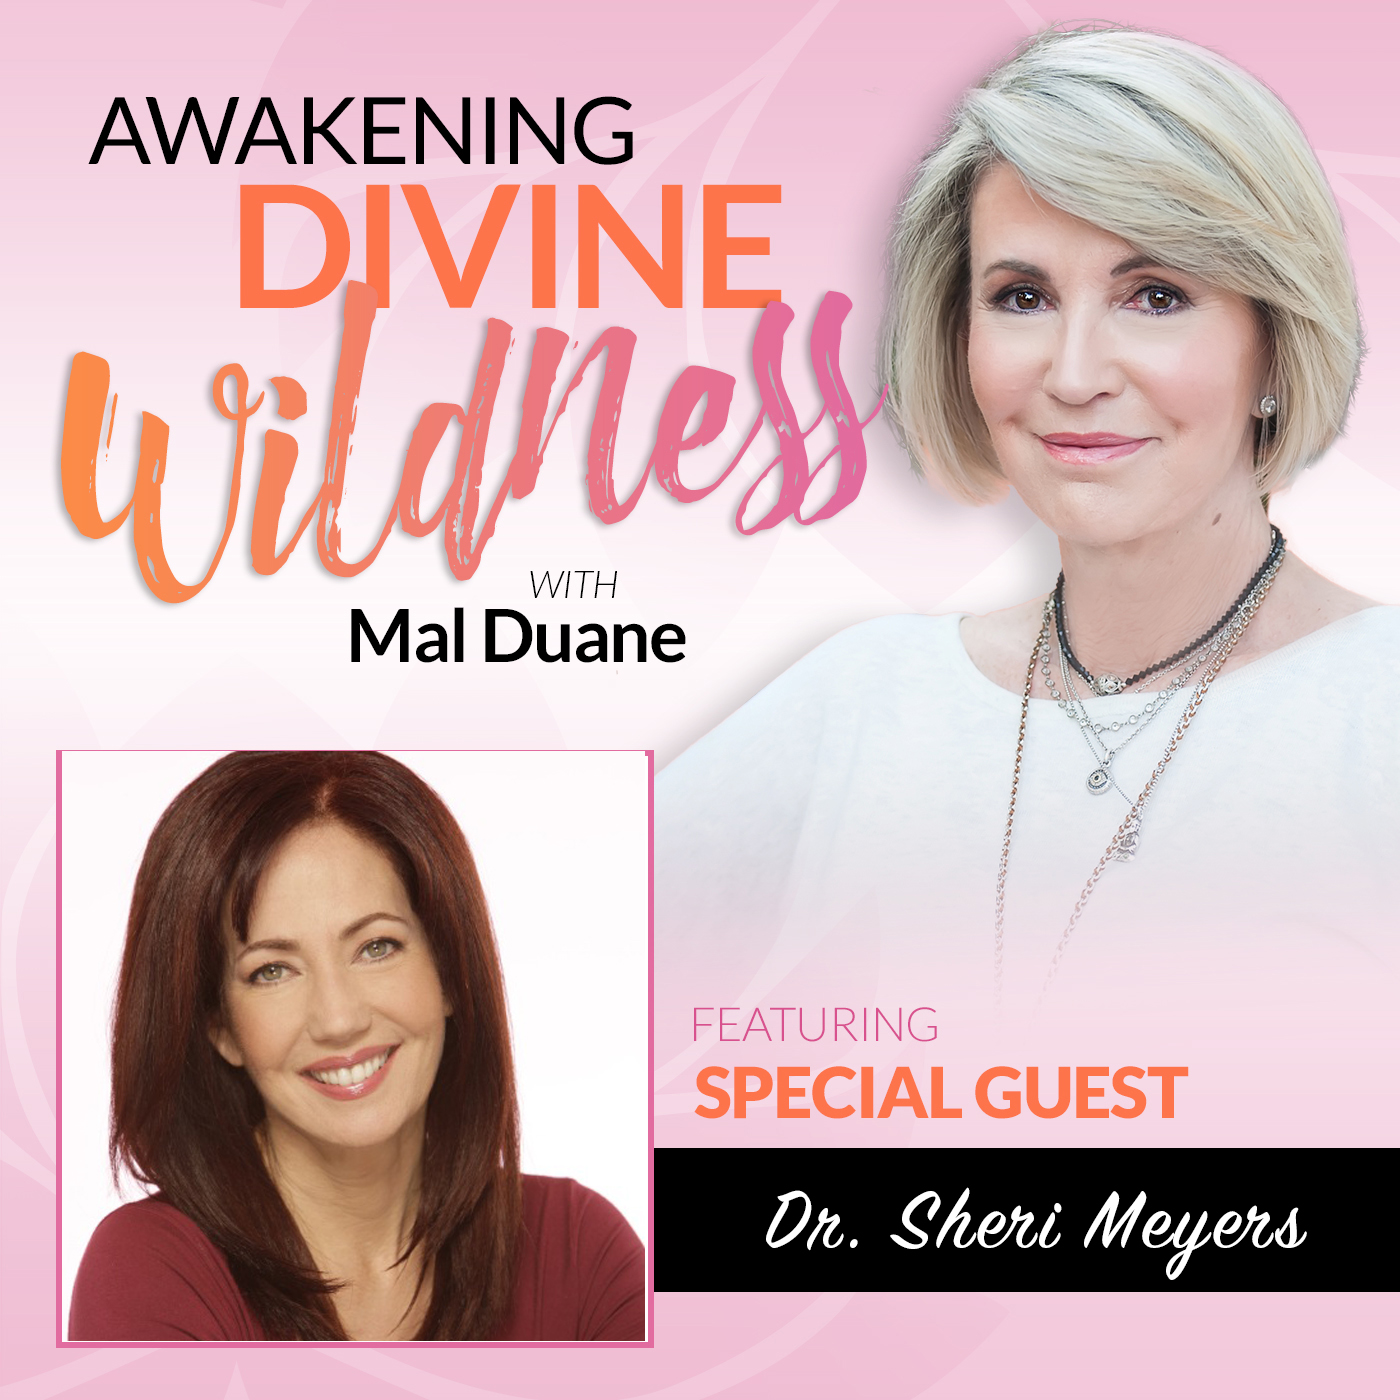 Chatting or Cheating with Dr. Sheri Meyers